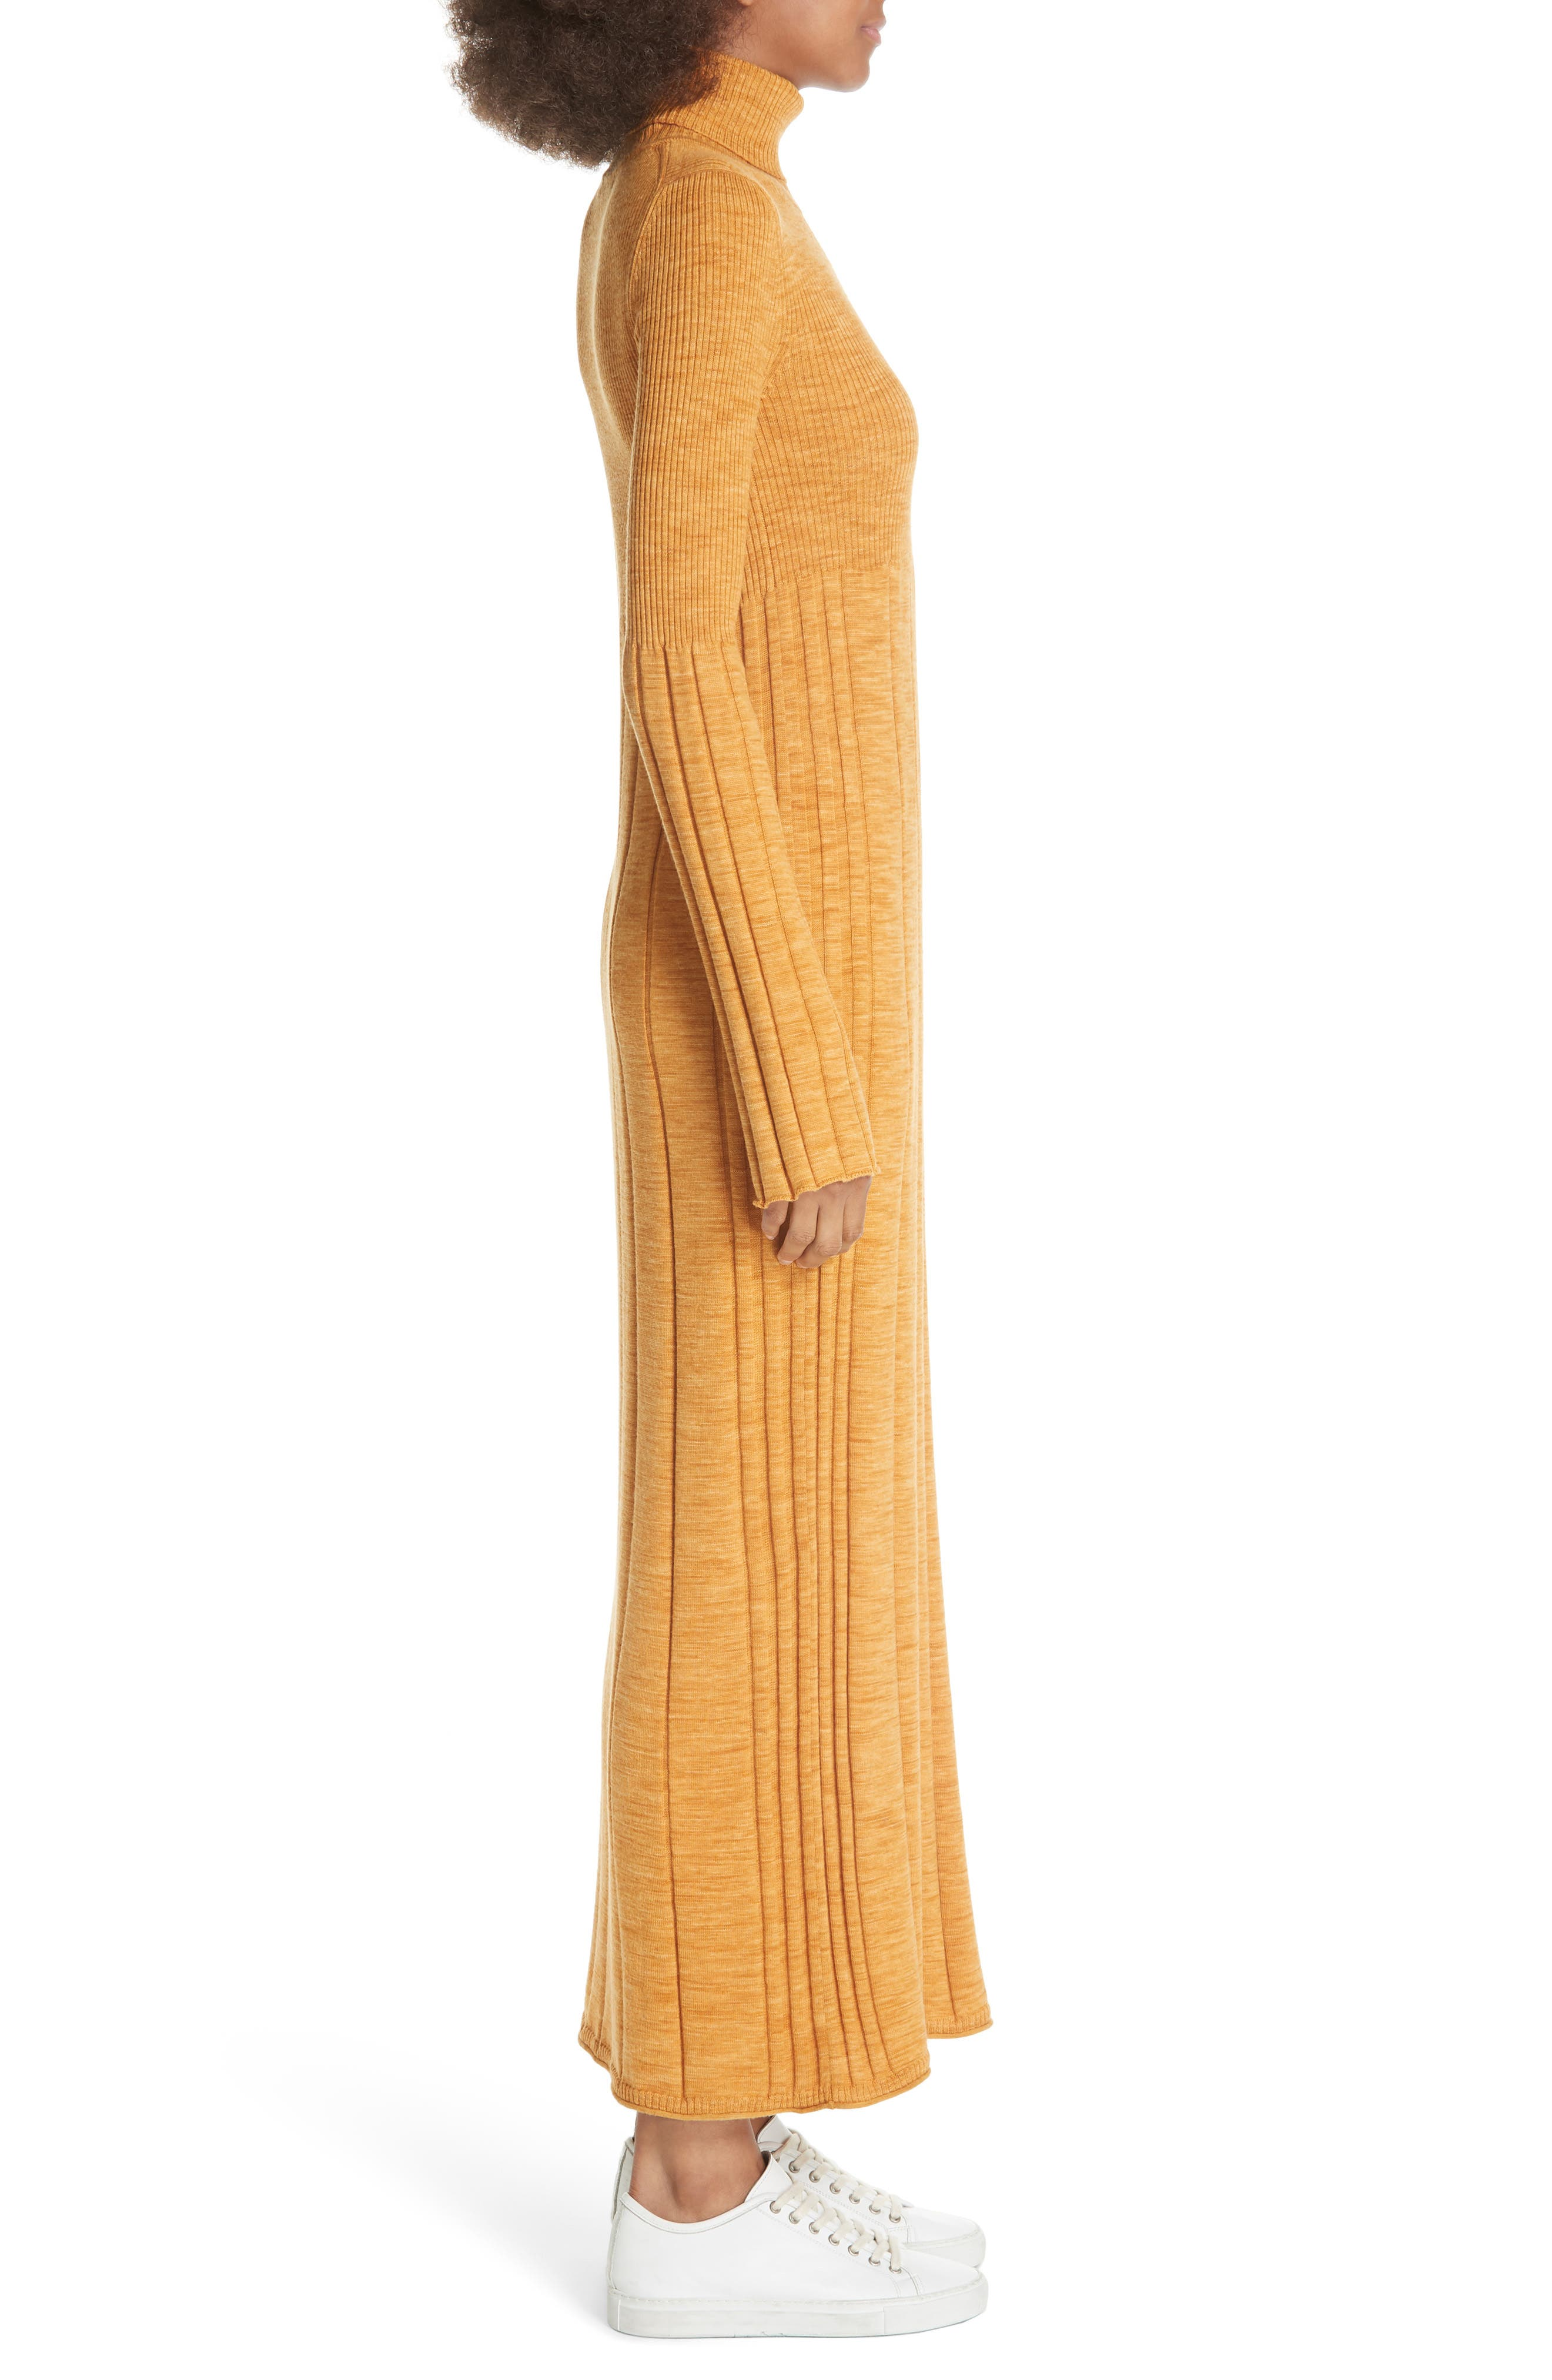 Clementine Ribbed Space Dye Wool Dress,                             Alternate thumbnail 3, color,                             700